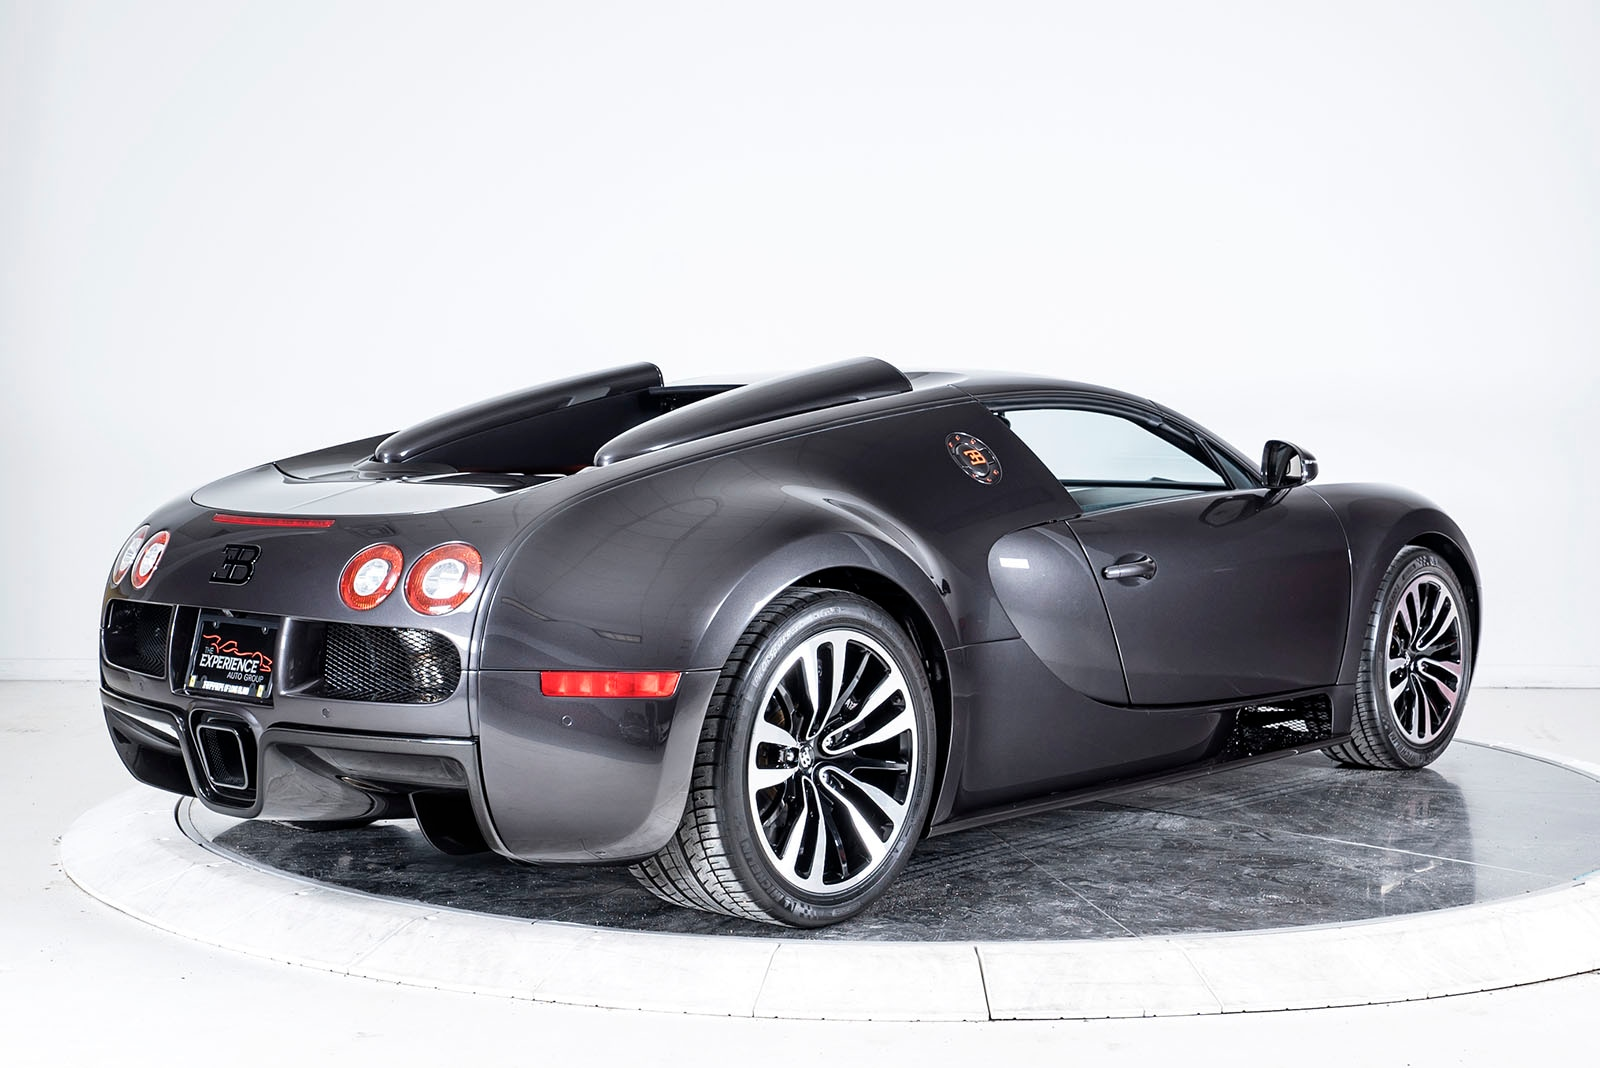 used 2012 bugatti veyron 16 4 grand sport for sale plainview near long island ny vin. Black Bedroom Furniture Sets. Home Design Ideas